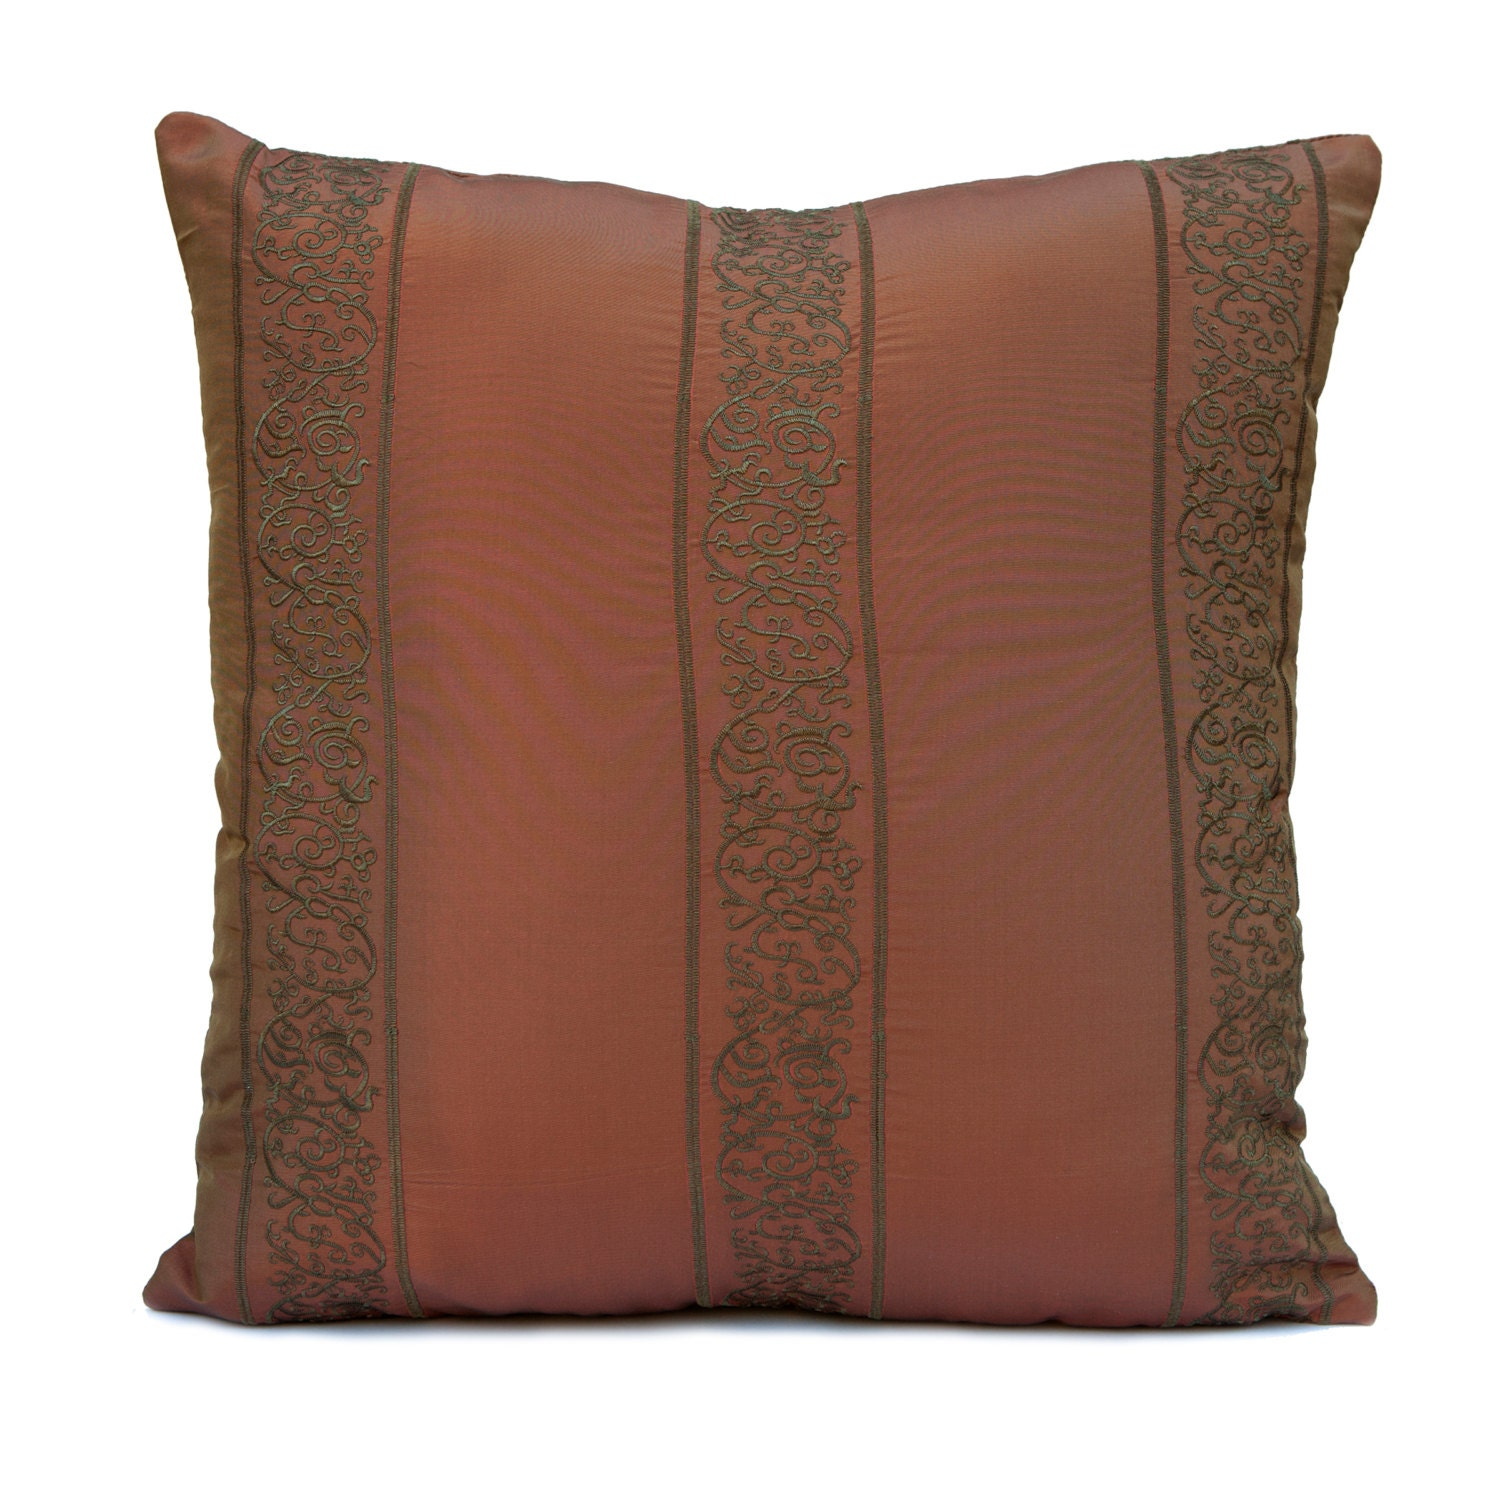 Throw Pillow Rust : Copper Rust Pillow Throw Pillow Cover Decorative Pillow